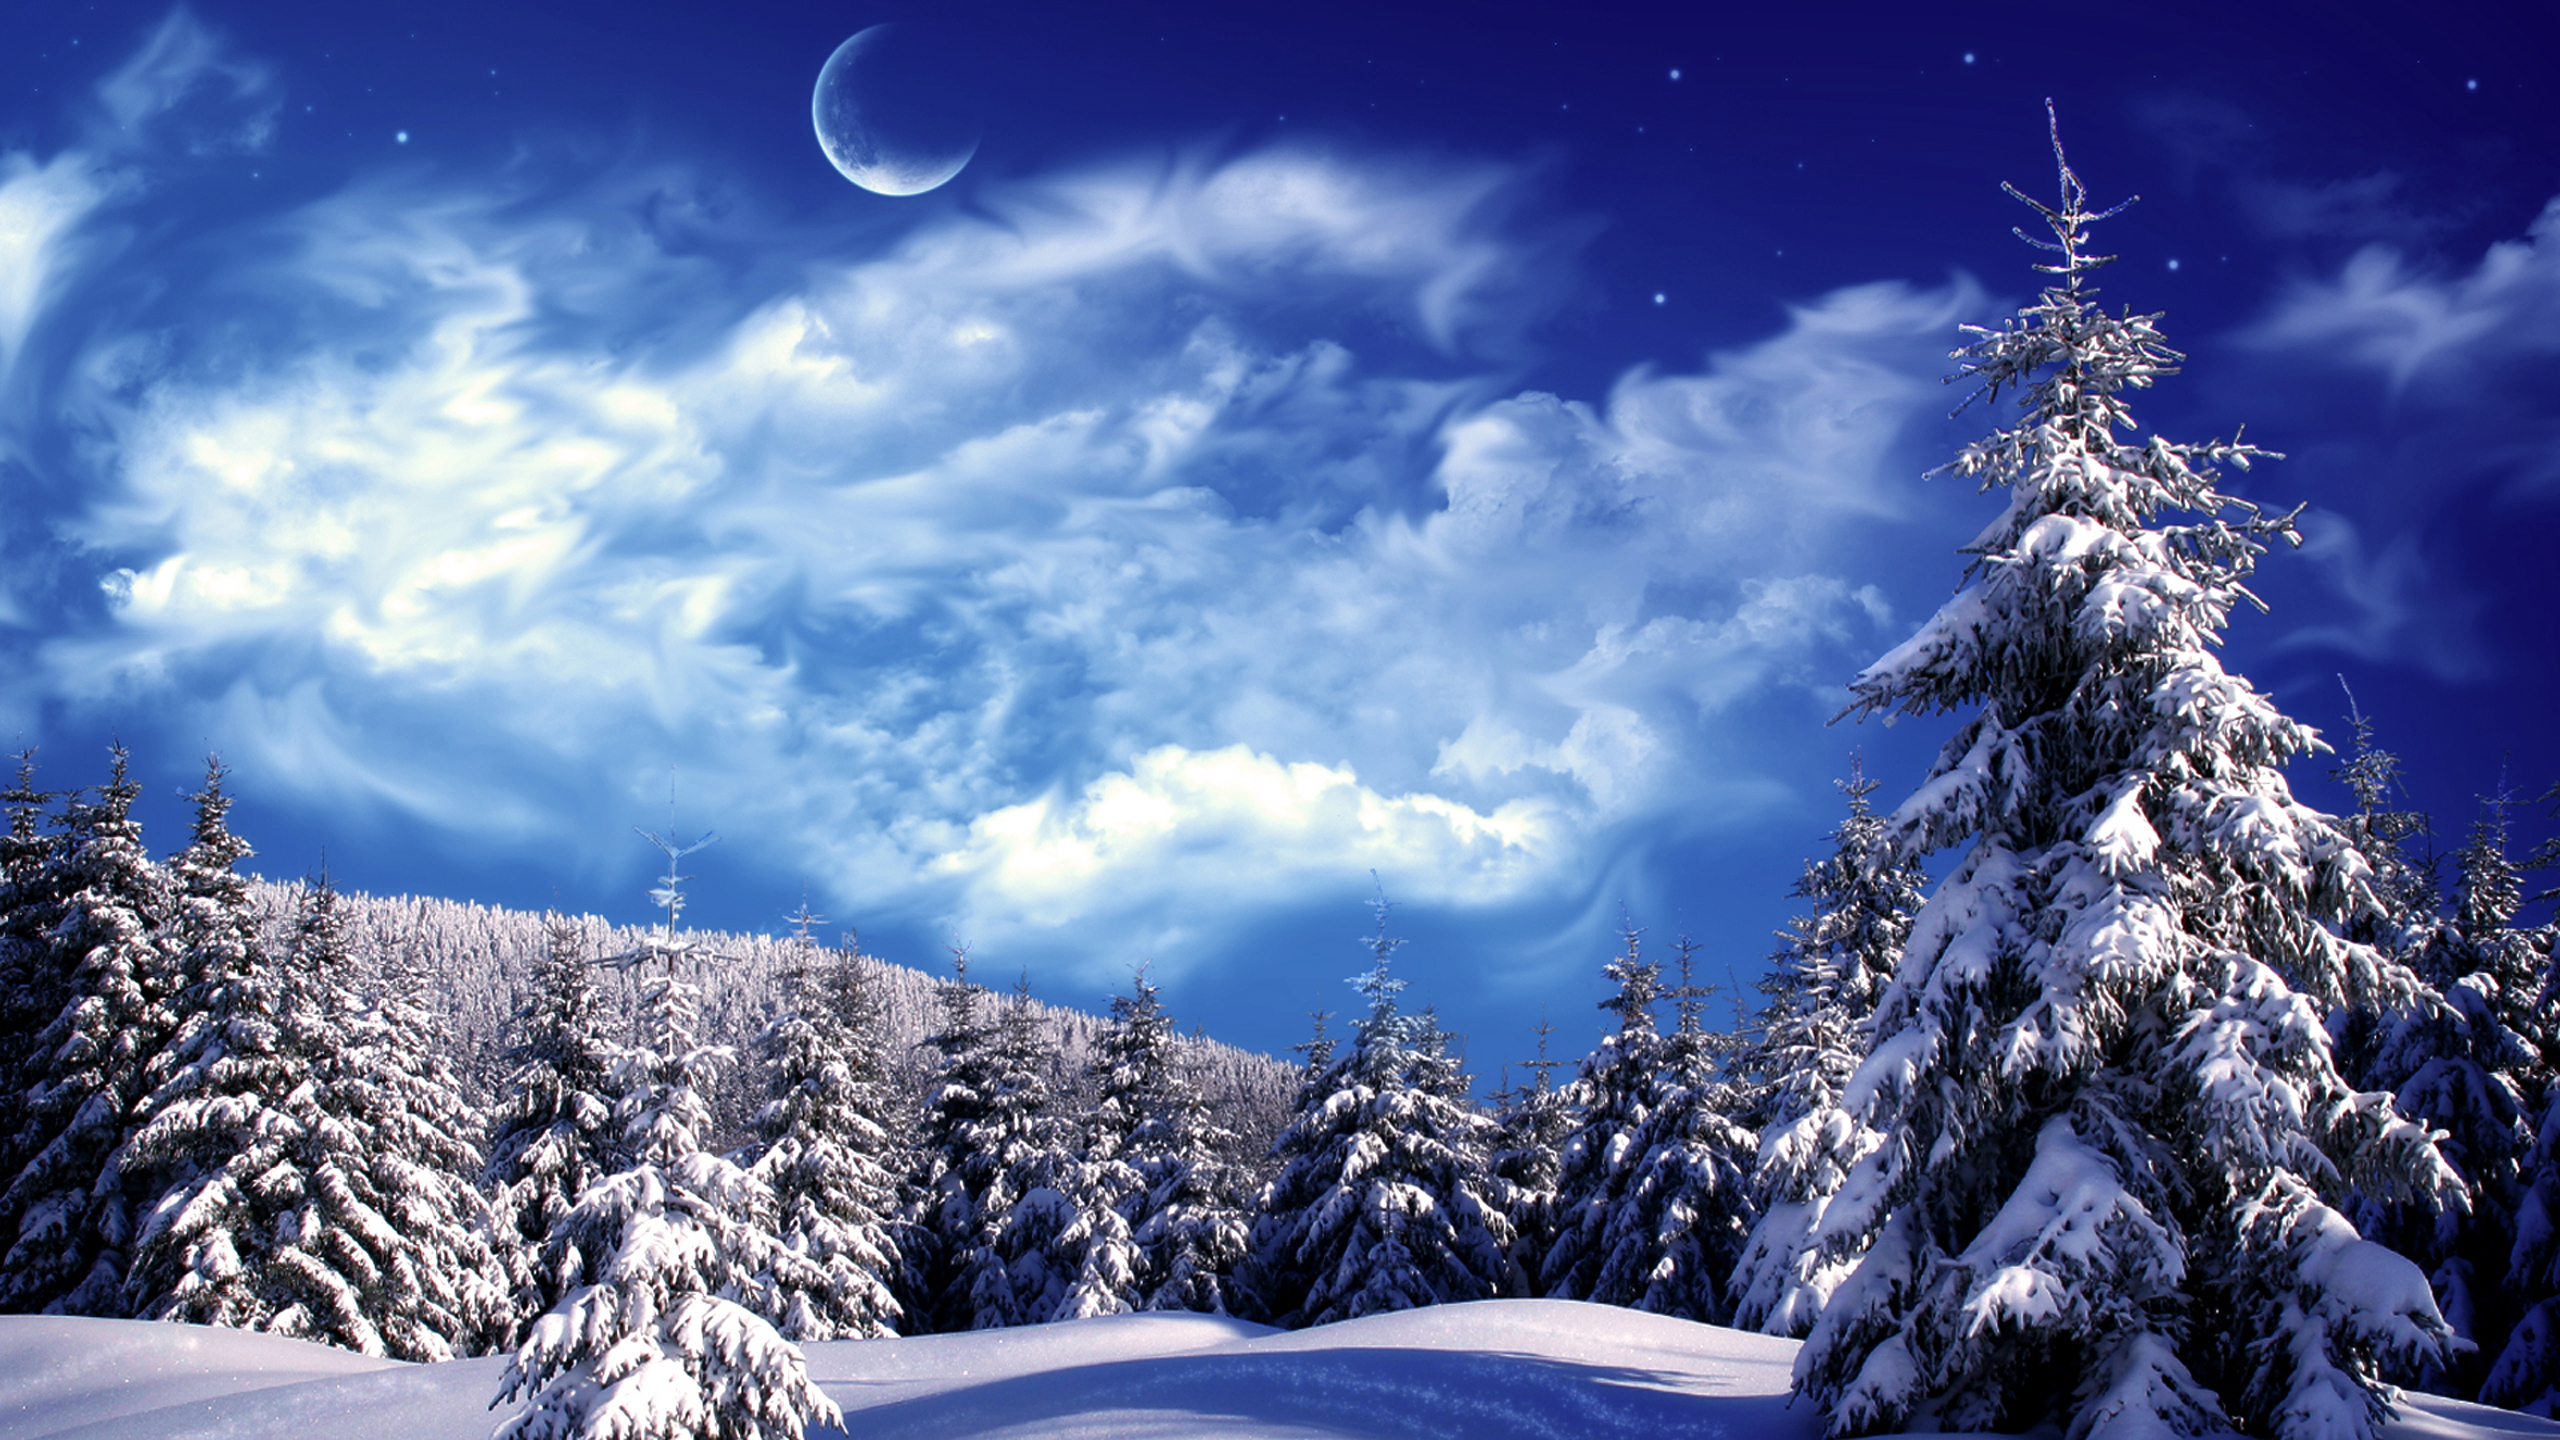 Winter and snow scenes free desktop wallpapers for widescreen winter and snow scenes free desktop wallpapers for widescreen hd and mobile voltagebd Image collections